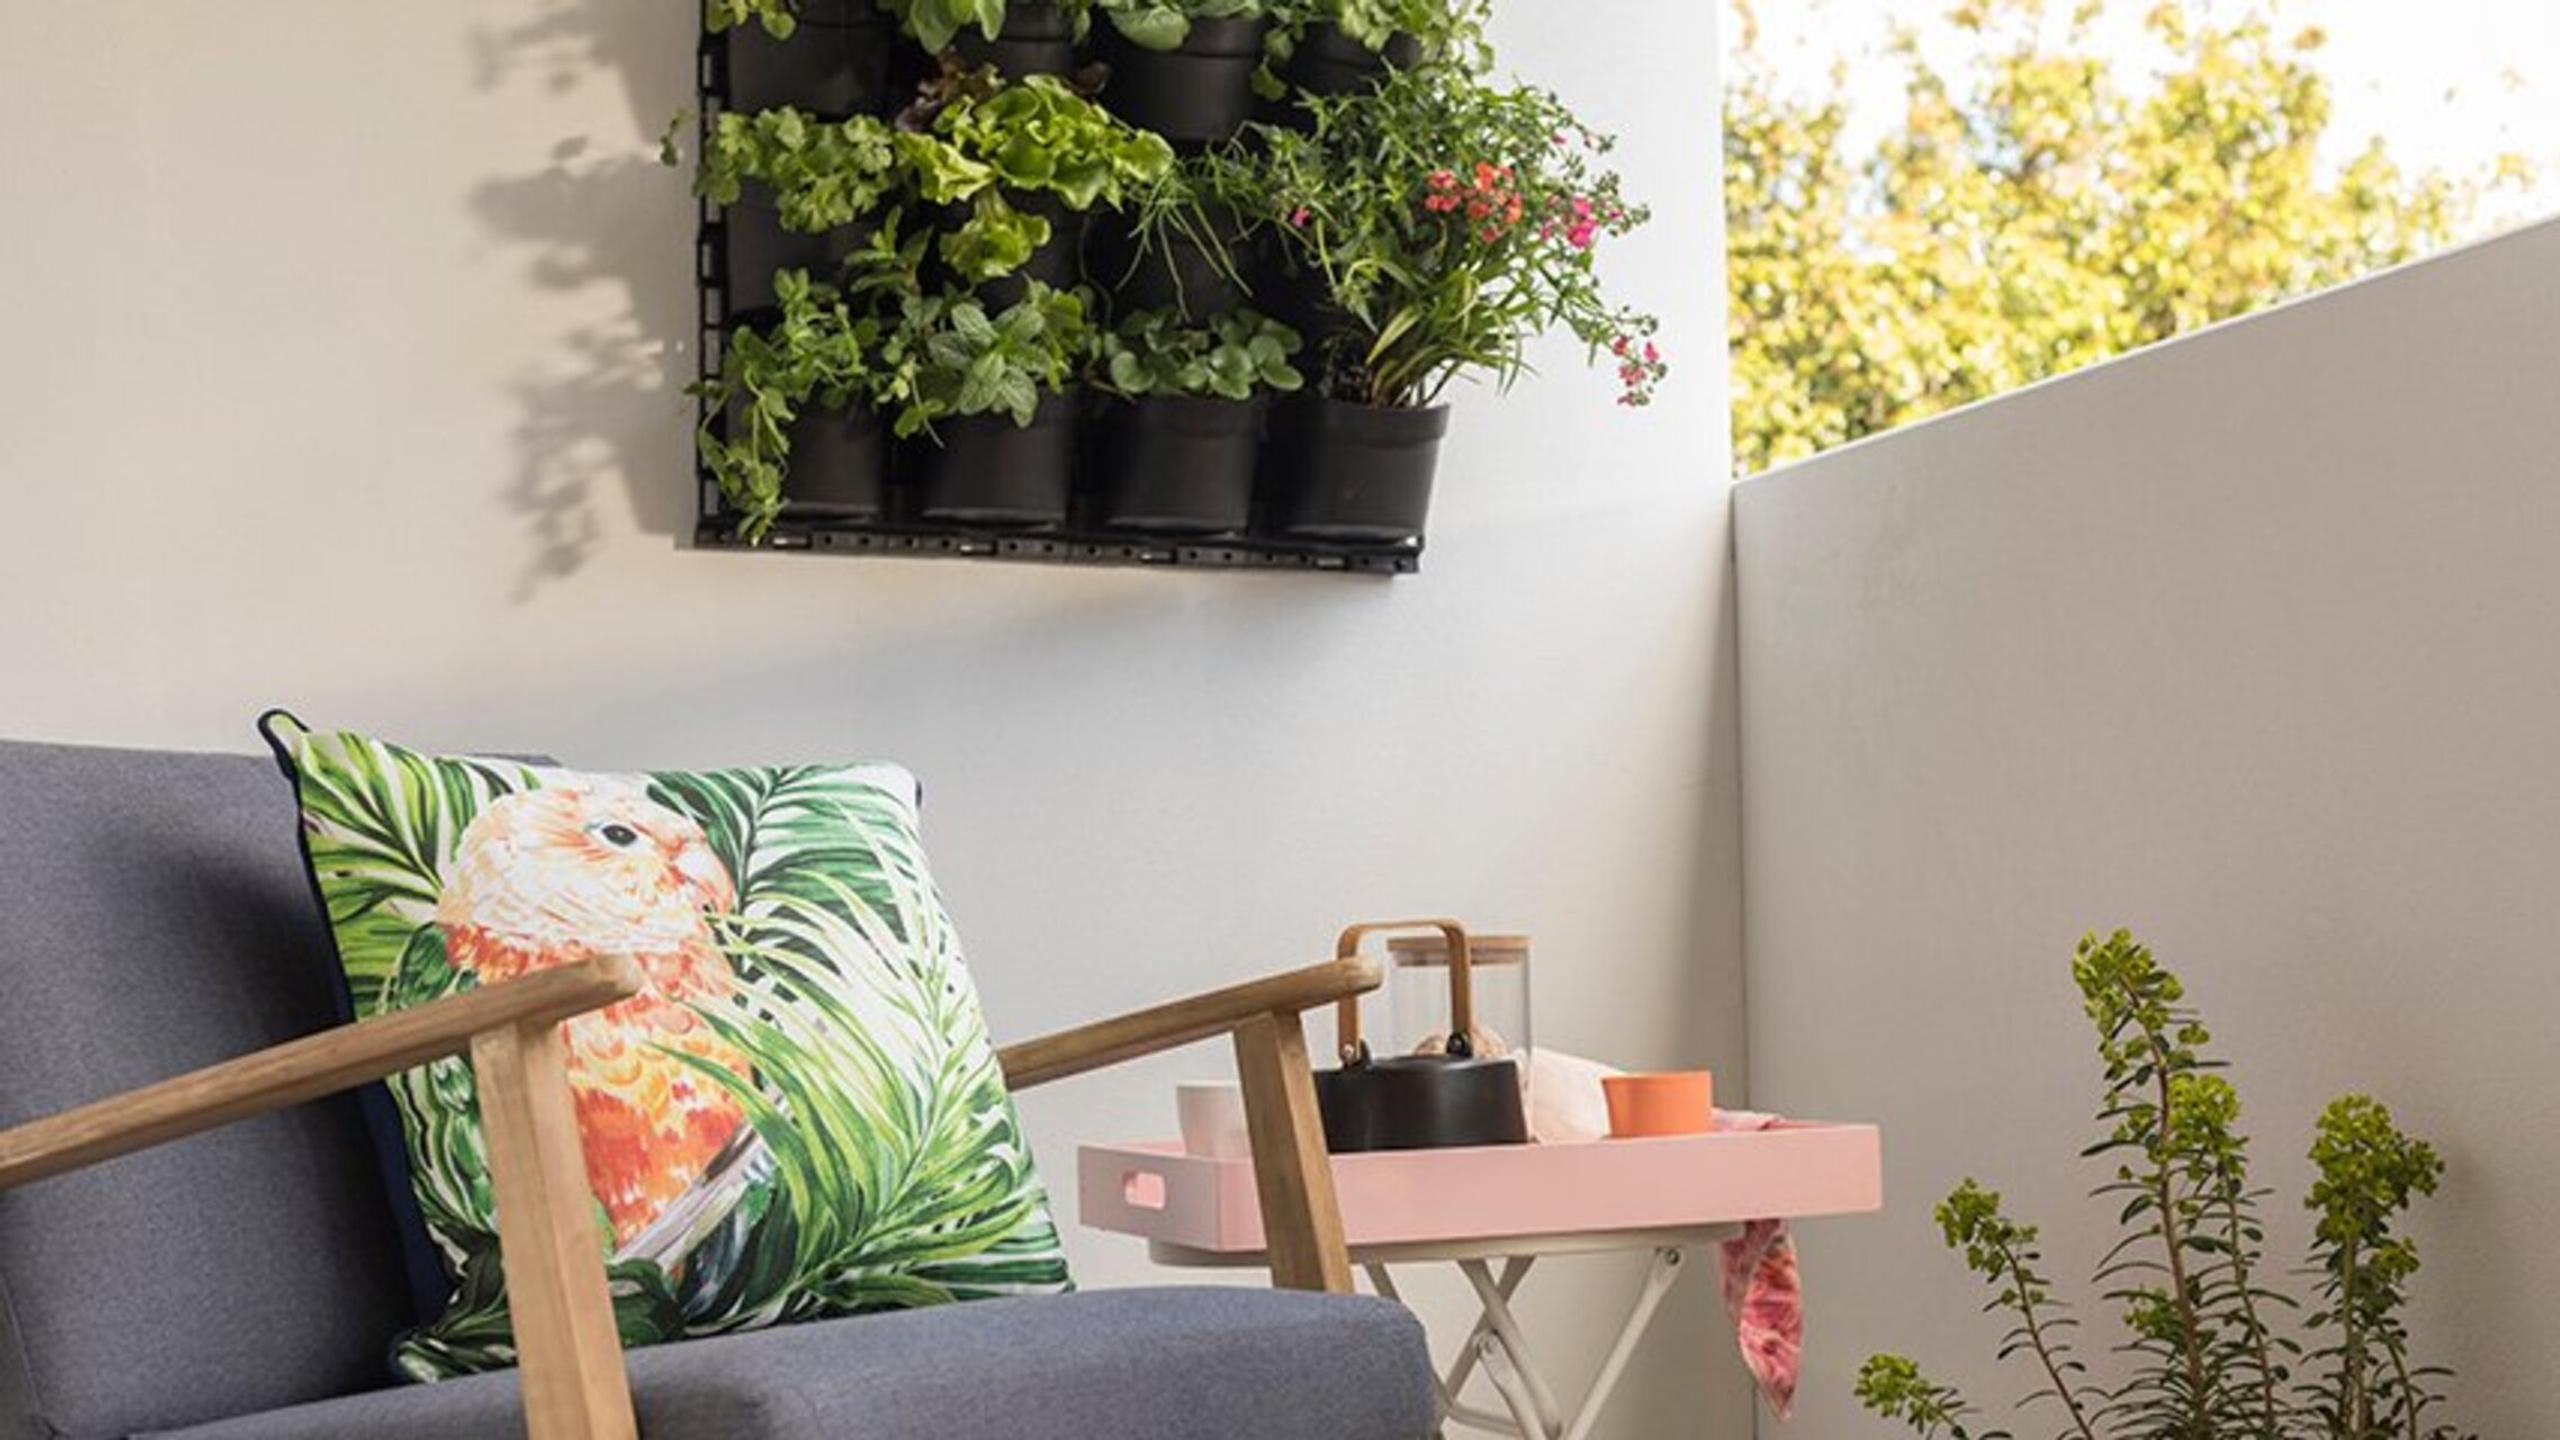 Outdoor lounge with vertical garden on white wall in the background.